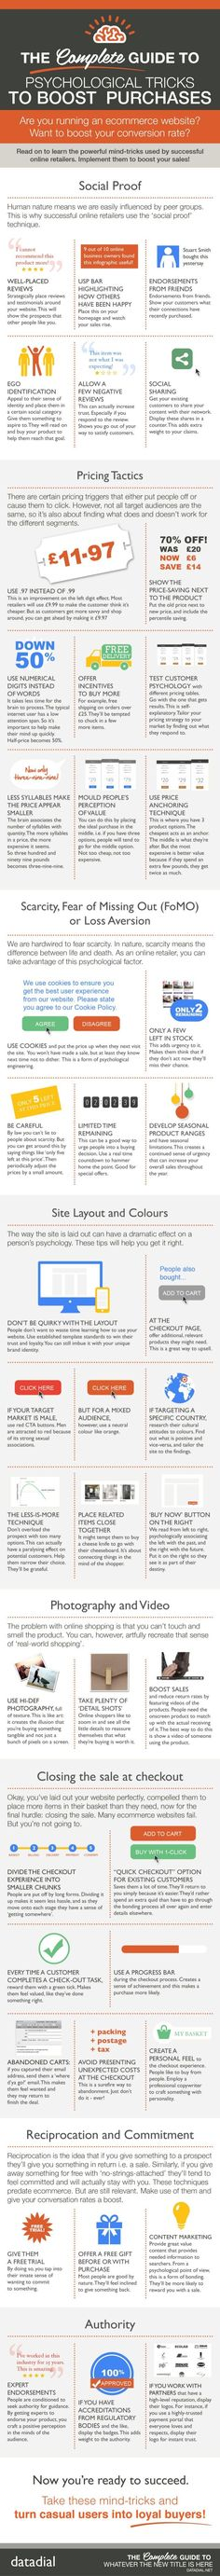 Effective Strategies for Increasing E-Commerce Conversions (Infographic) #seo